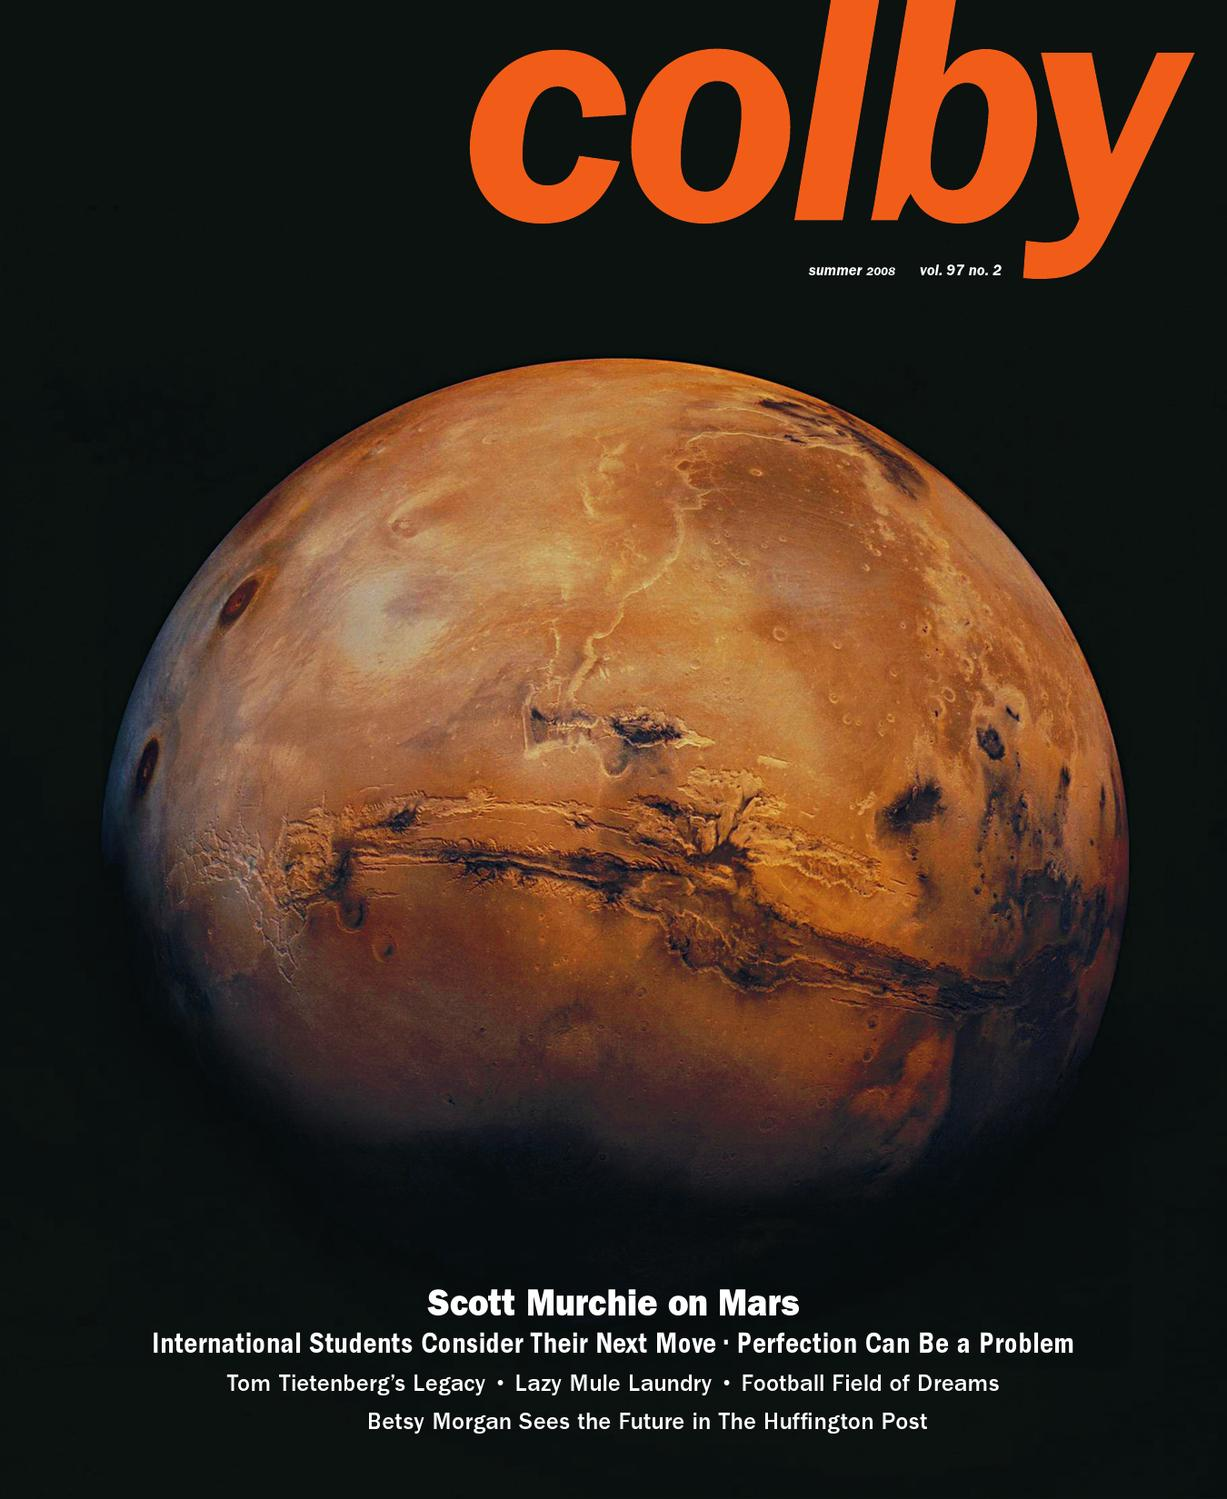 Colby Magazine vol  97, no  2 by Colby College Libraries - issuu